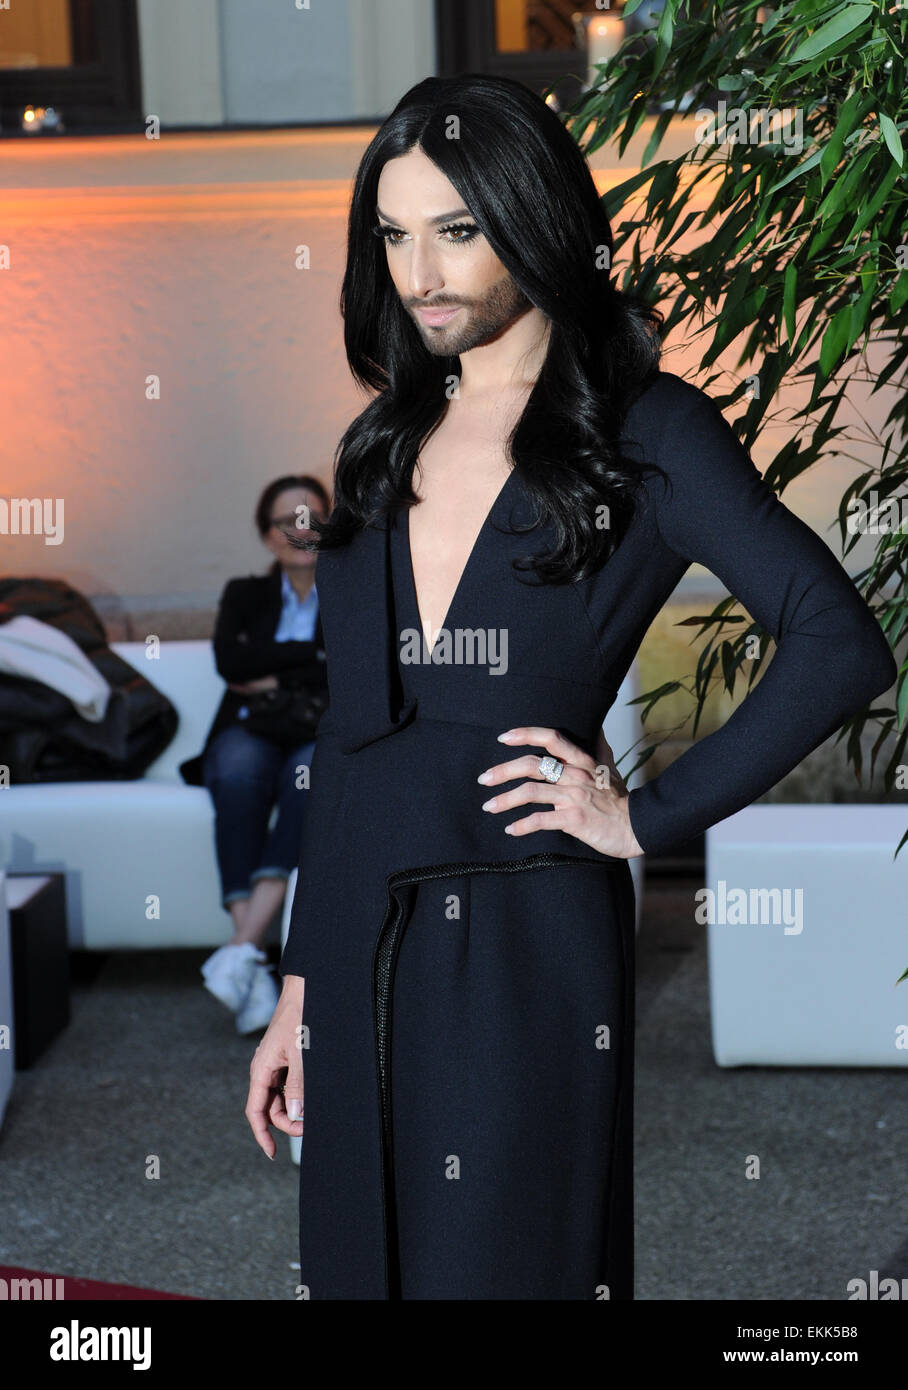 Munich, Germany. 10th Apr, 2015. Singer Conchita Wurst at the premiere of US American TV show 'Transparent' - Stock Image